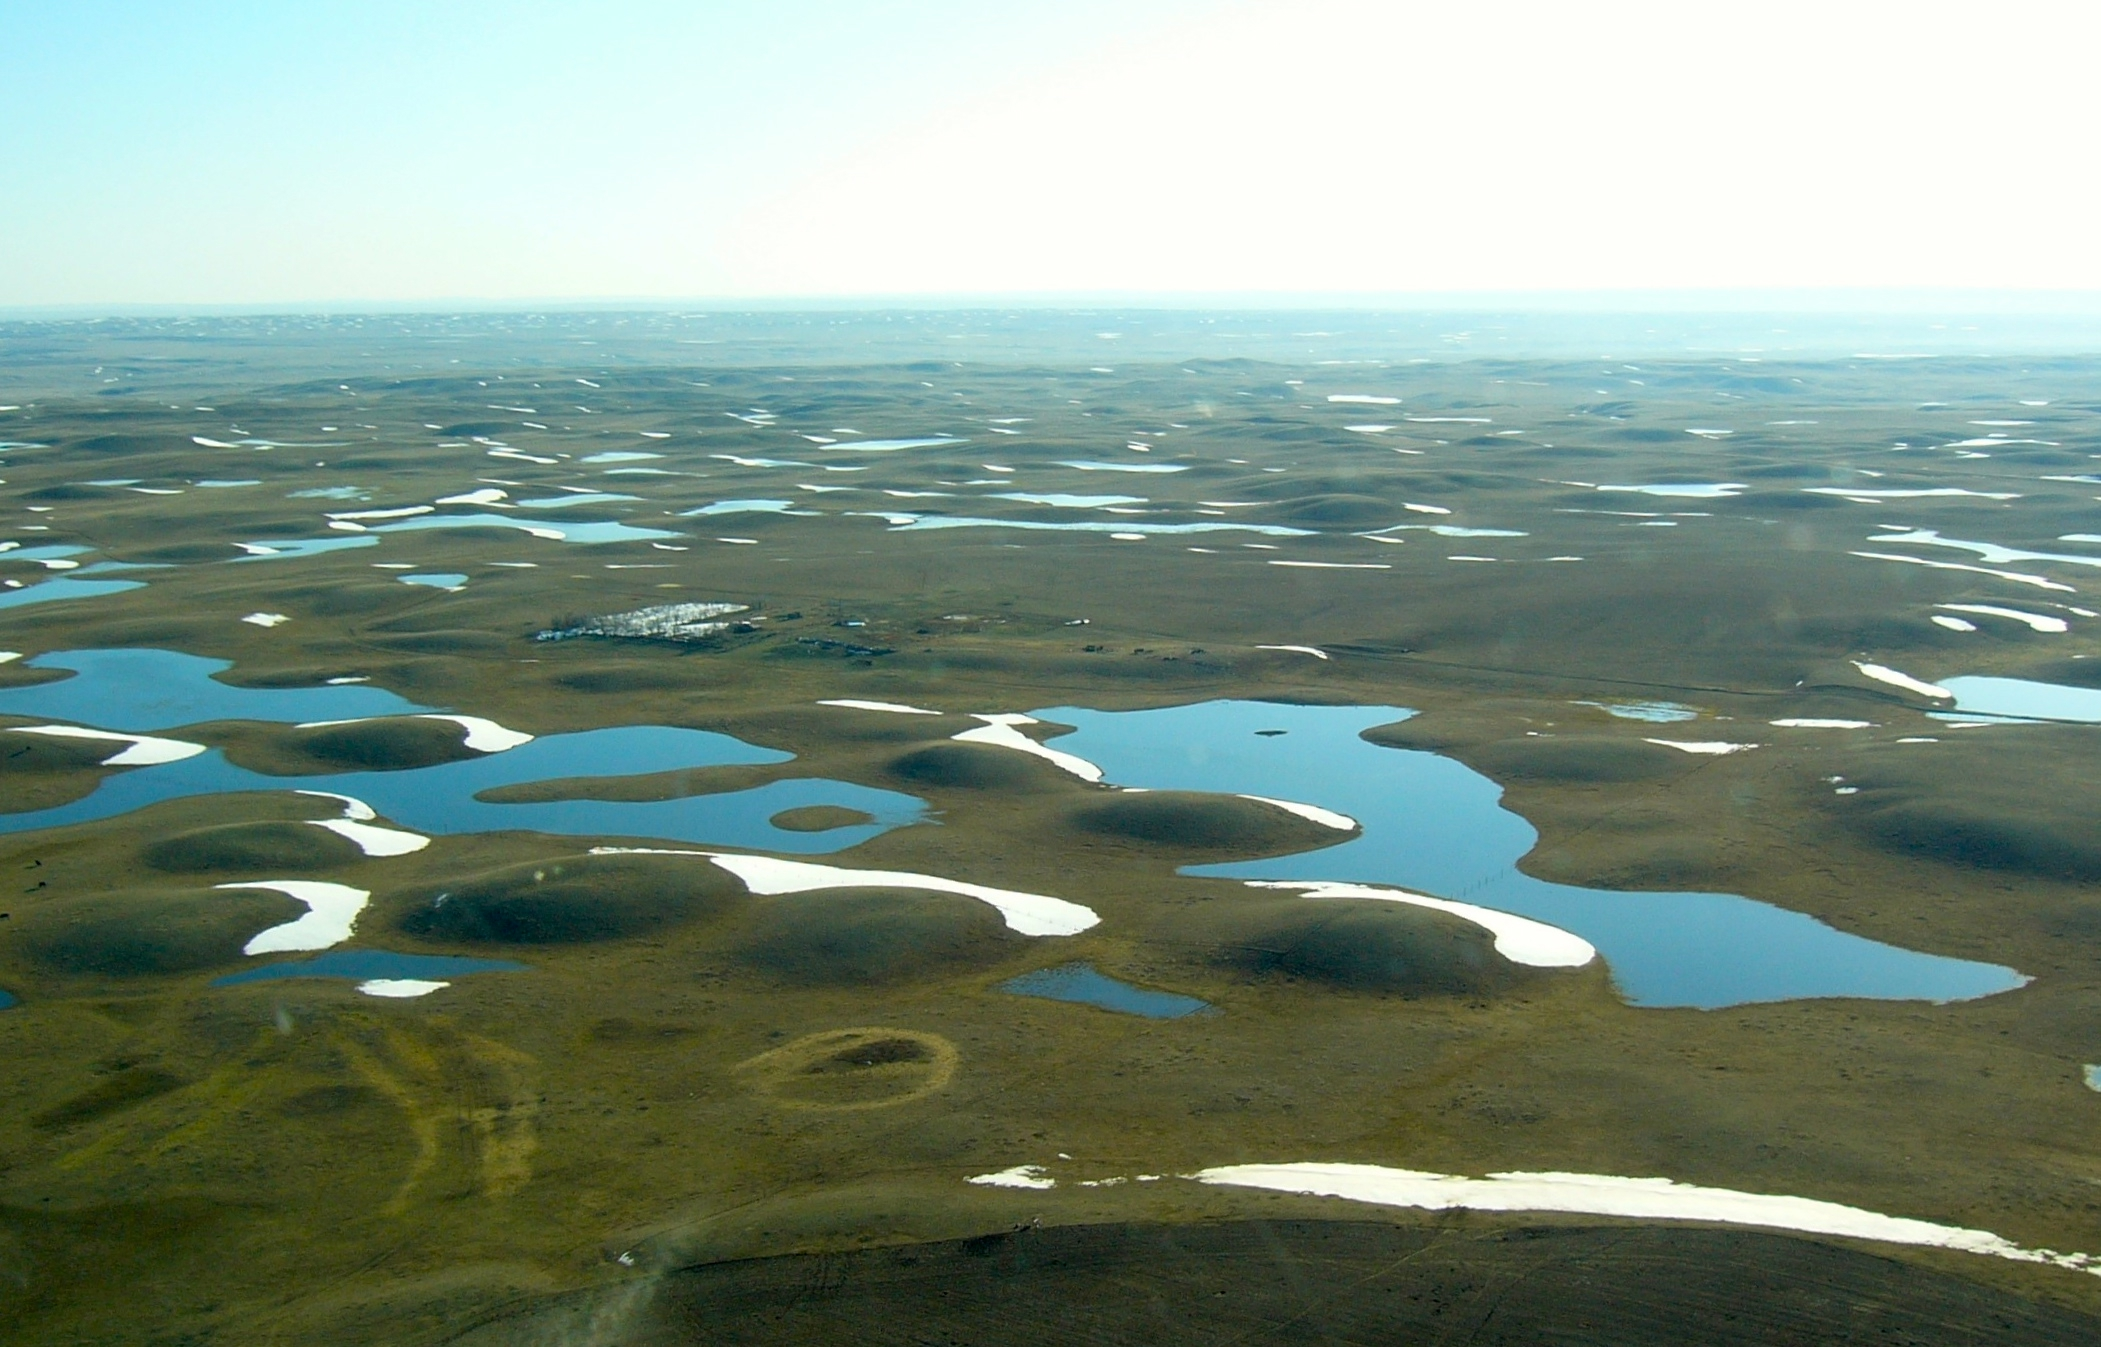 The Prarie Pothole Region wetlands. Photo credit: Ducks Unlimited, Inc.